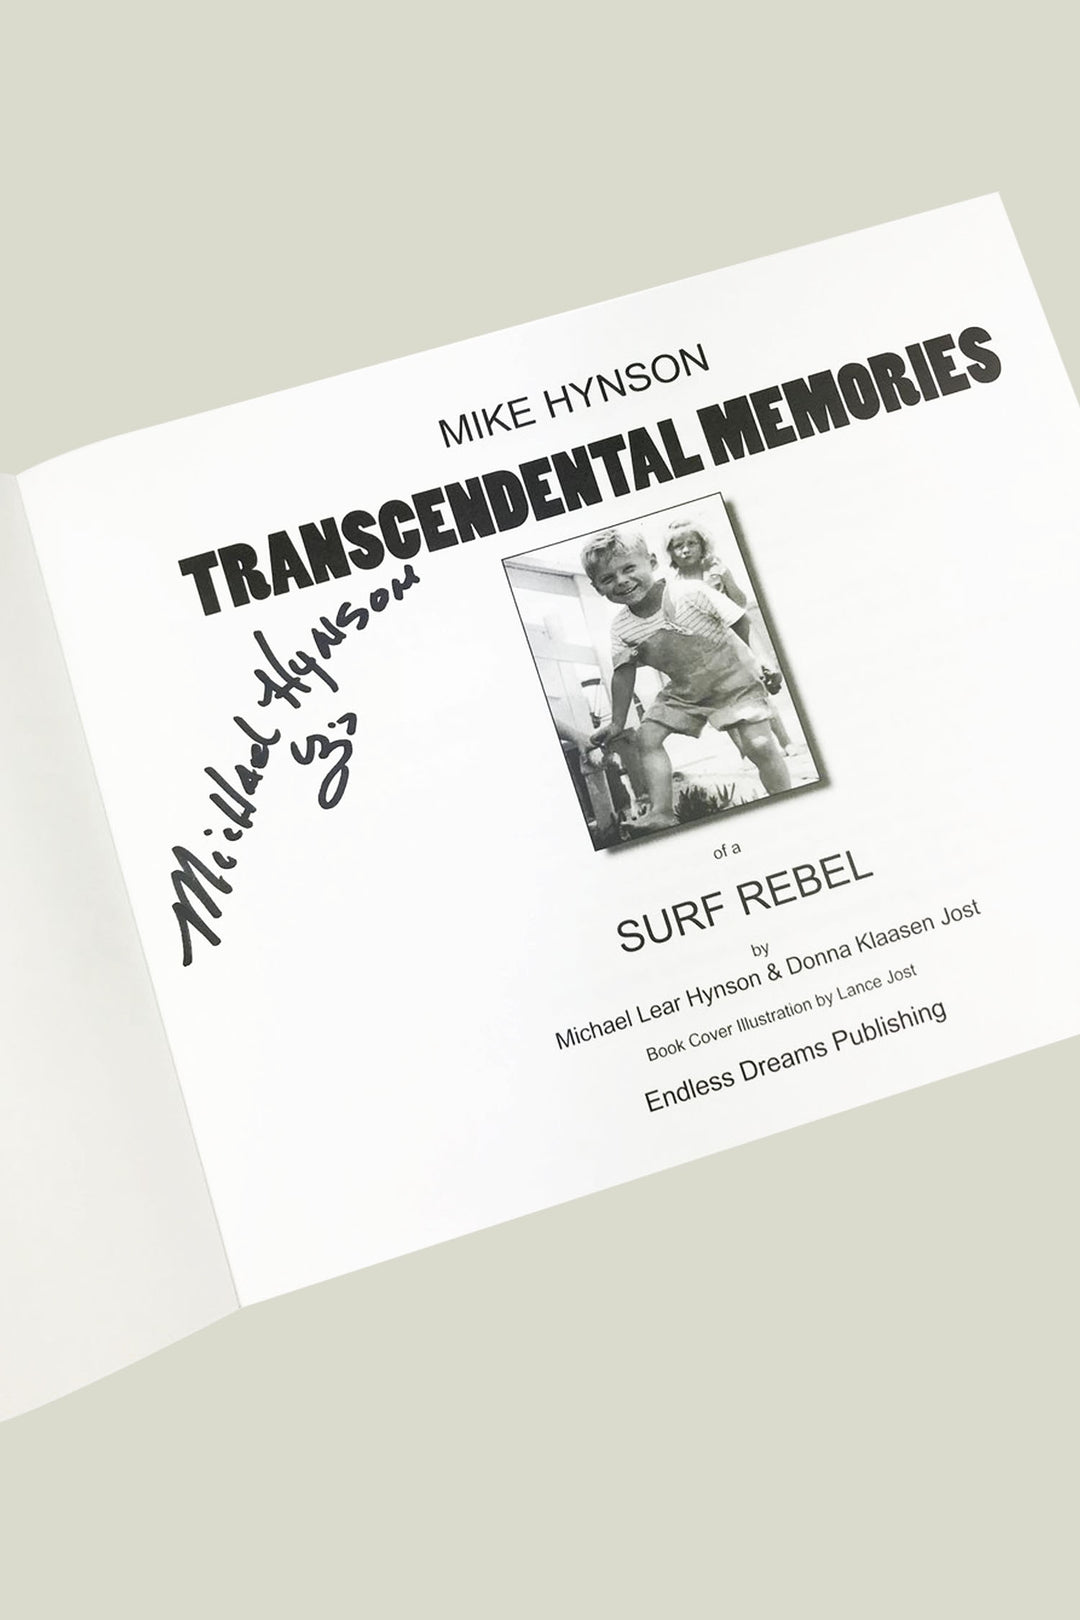 Mike Hynson - Transcendental Memories of a Surf Rebel (signed edition)